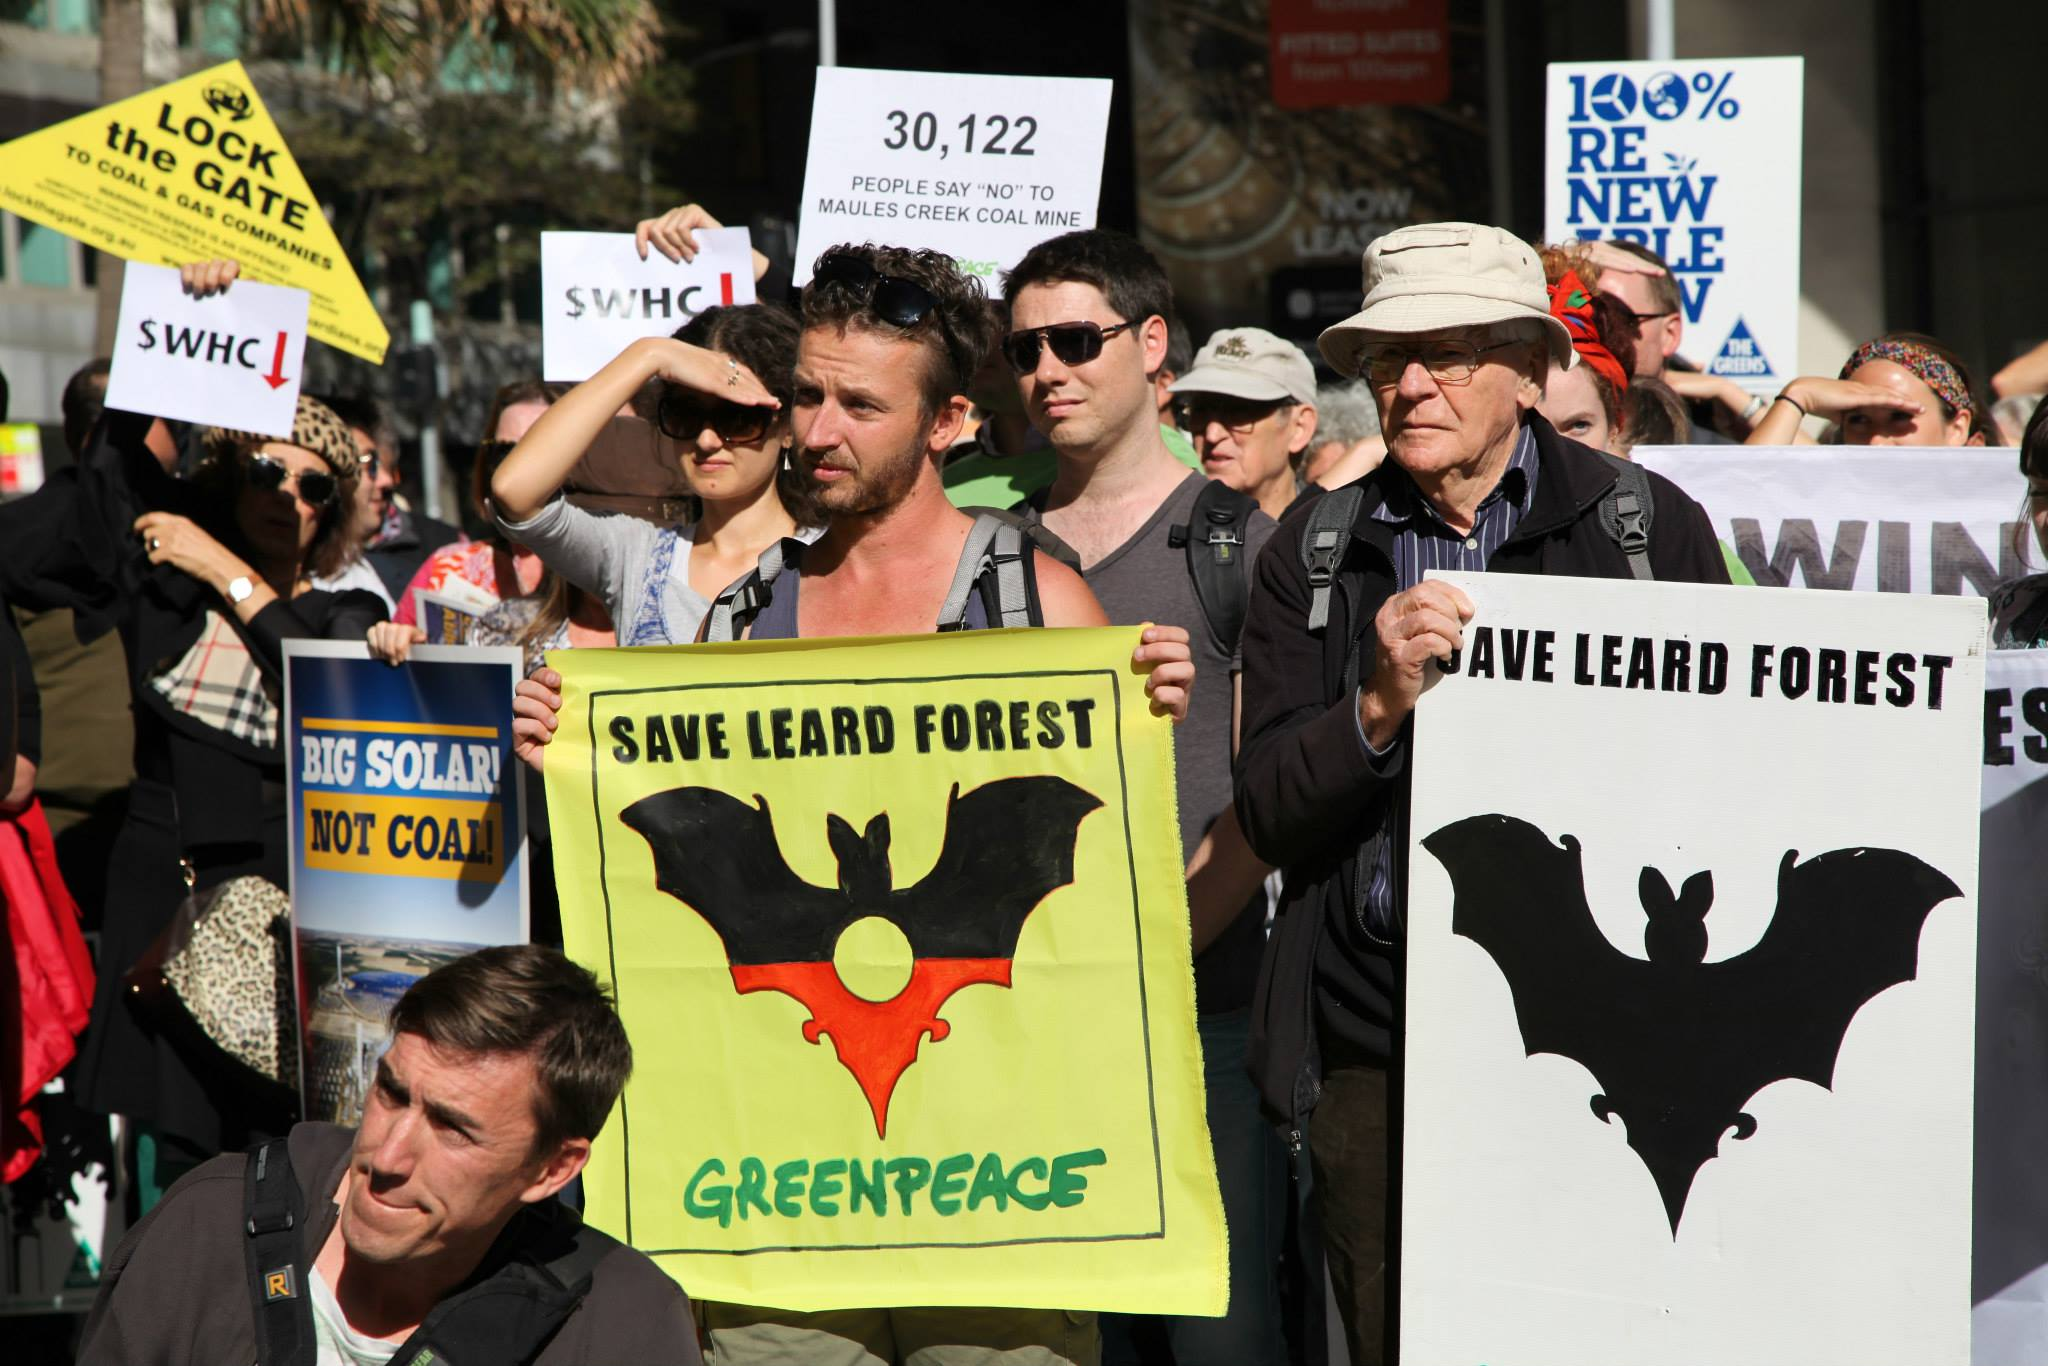 sydney-rally-save-leard-forest.jpg